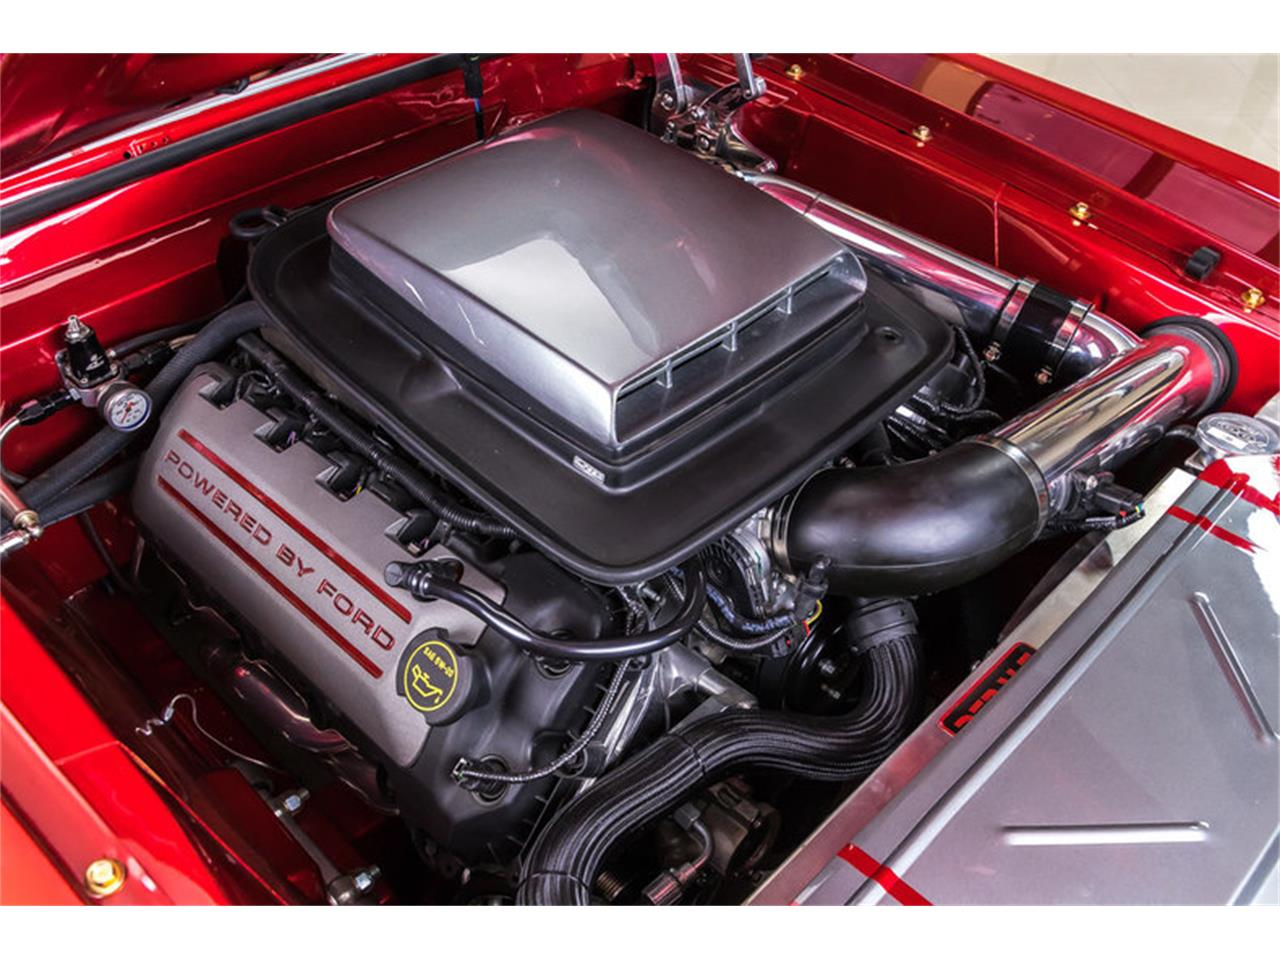 Large Picture of Classic '69 Mustang Fastback Restomod - $194,900.00 Offered by Vanguard Motor Sales - L6C8